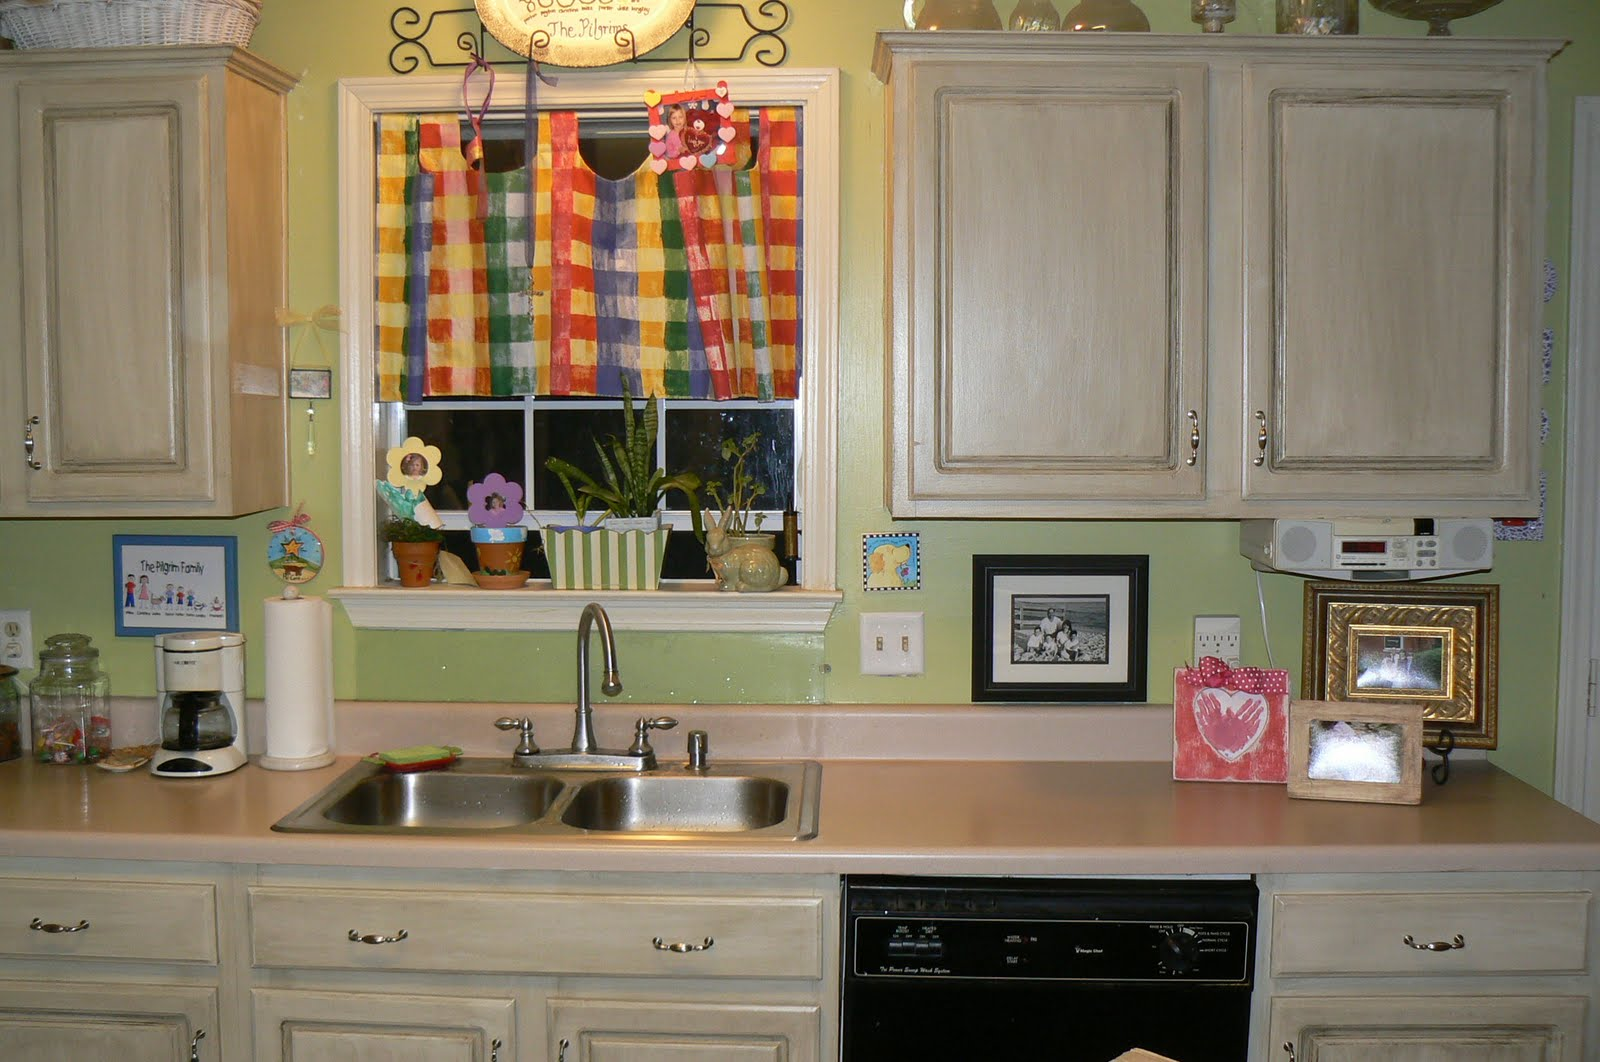 painted kitchen cabinets garden windows my 4littlepilgrims and glazed